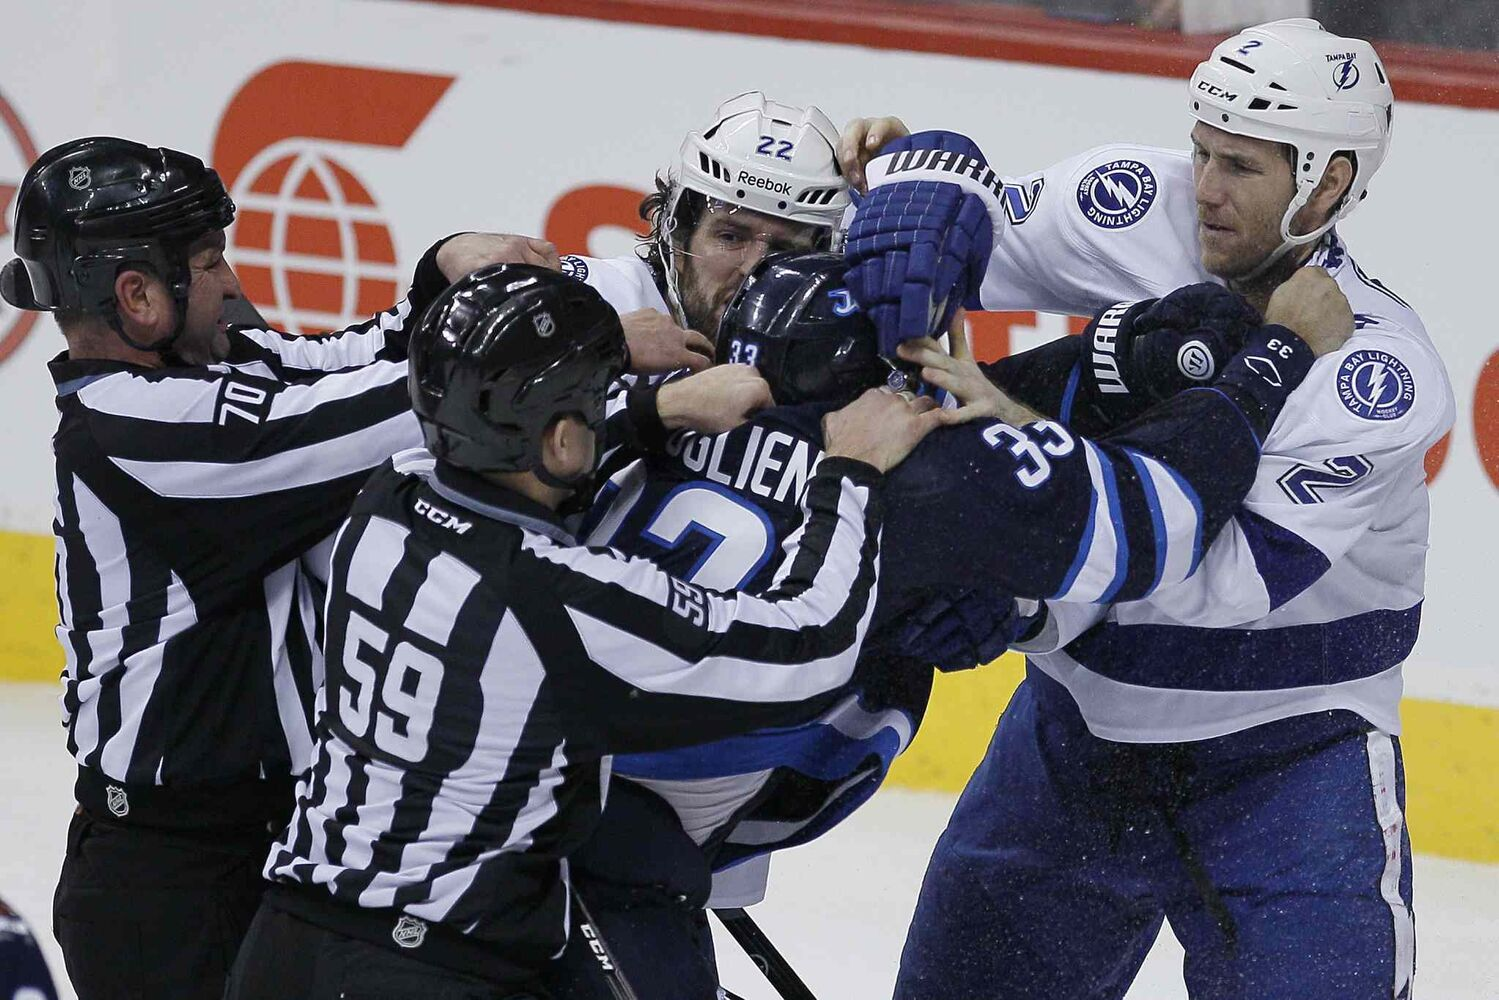 Linesmen hold Winnipeg Jets' Dustin Byfuglien (33) back from Tampa Bay Lightning's Jean-Philippe Cole (22) and Eric Brewer (2) during the third period.